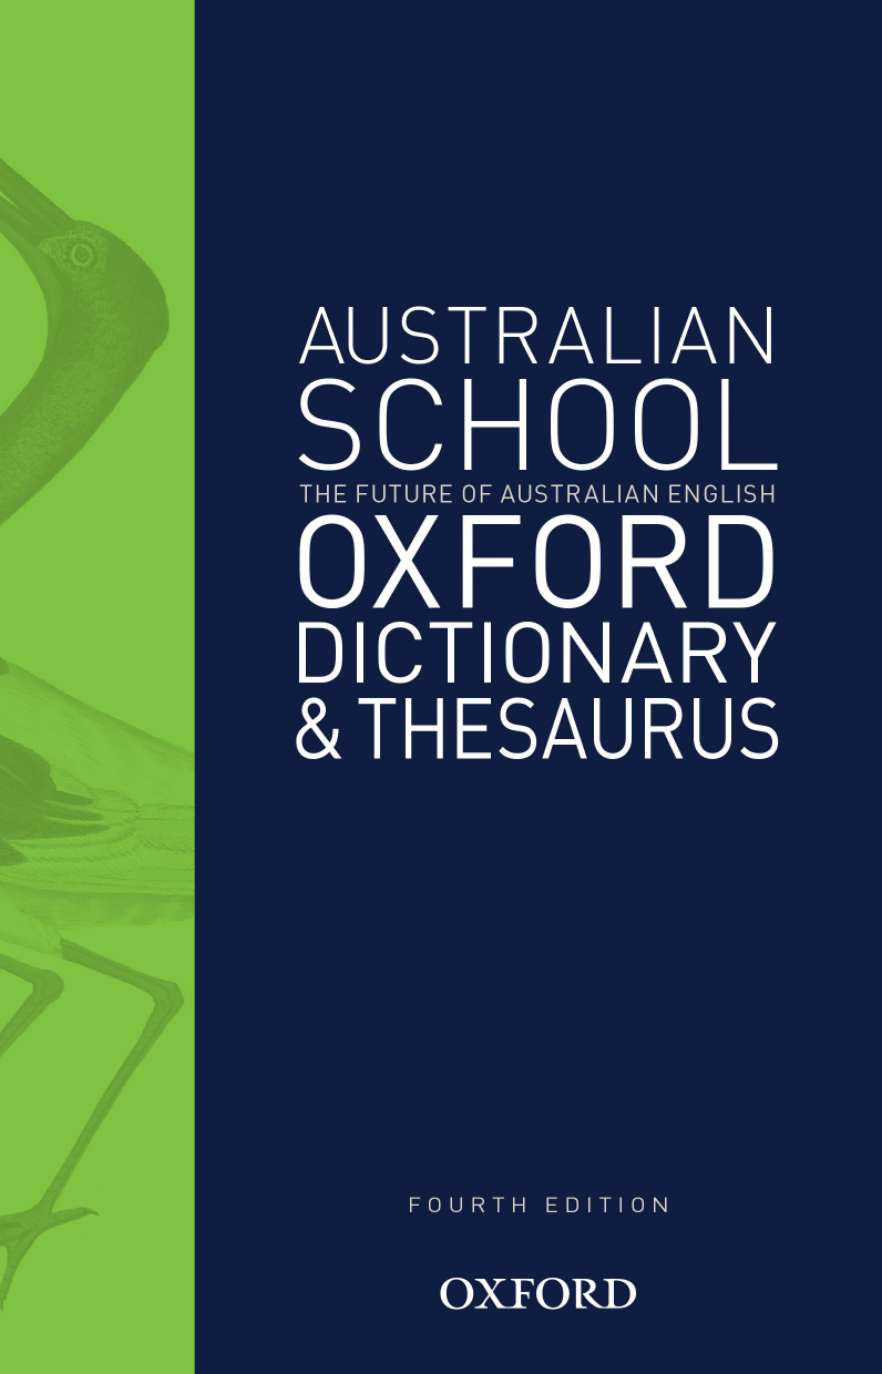 Australian School Oxford Dictionary & Thesaurus 4edAustralian Dictionaries/Thesauruses/Reference